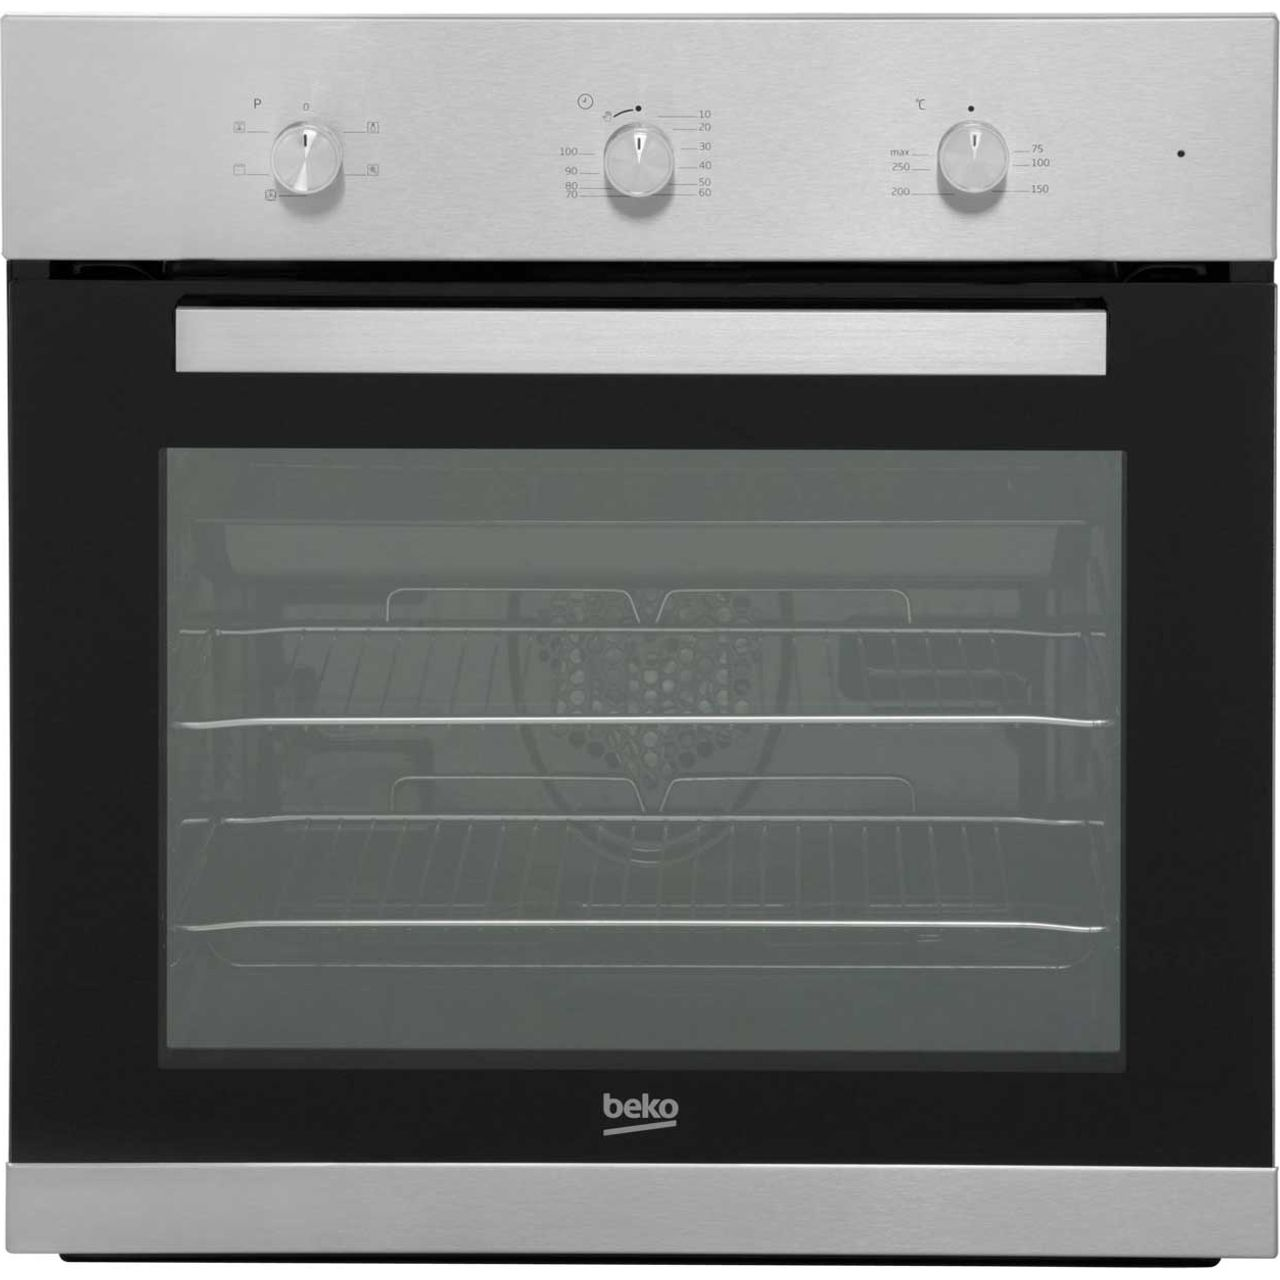 Beko EcoSmart BIF22100X Built In Electric Single Oven - Stainless Steel